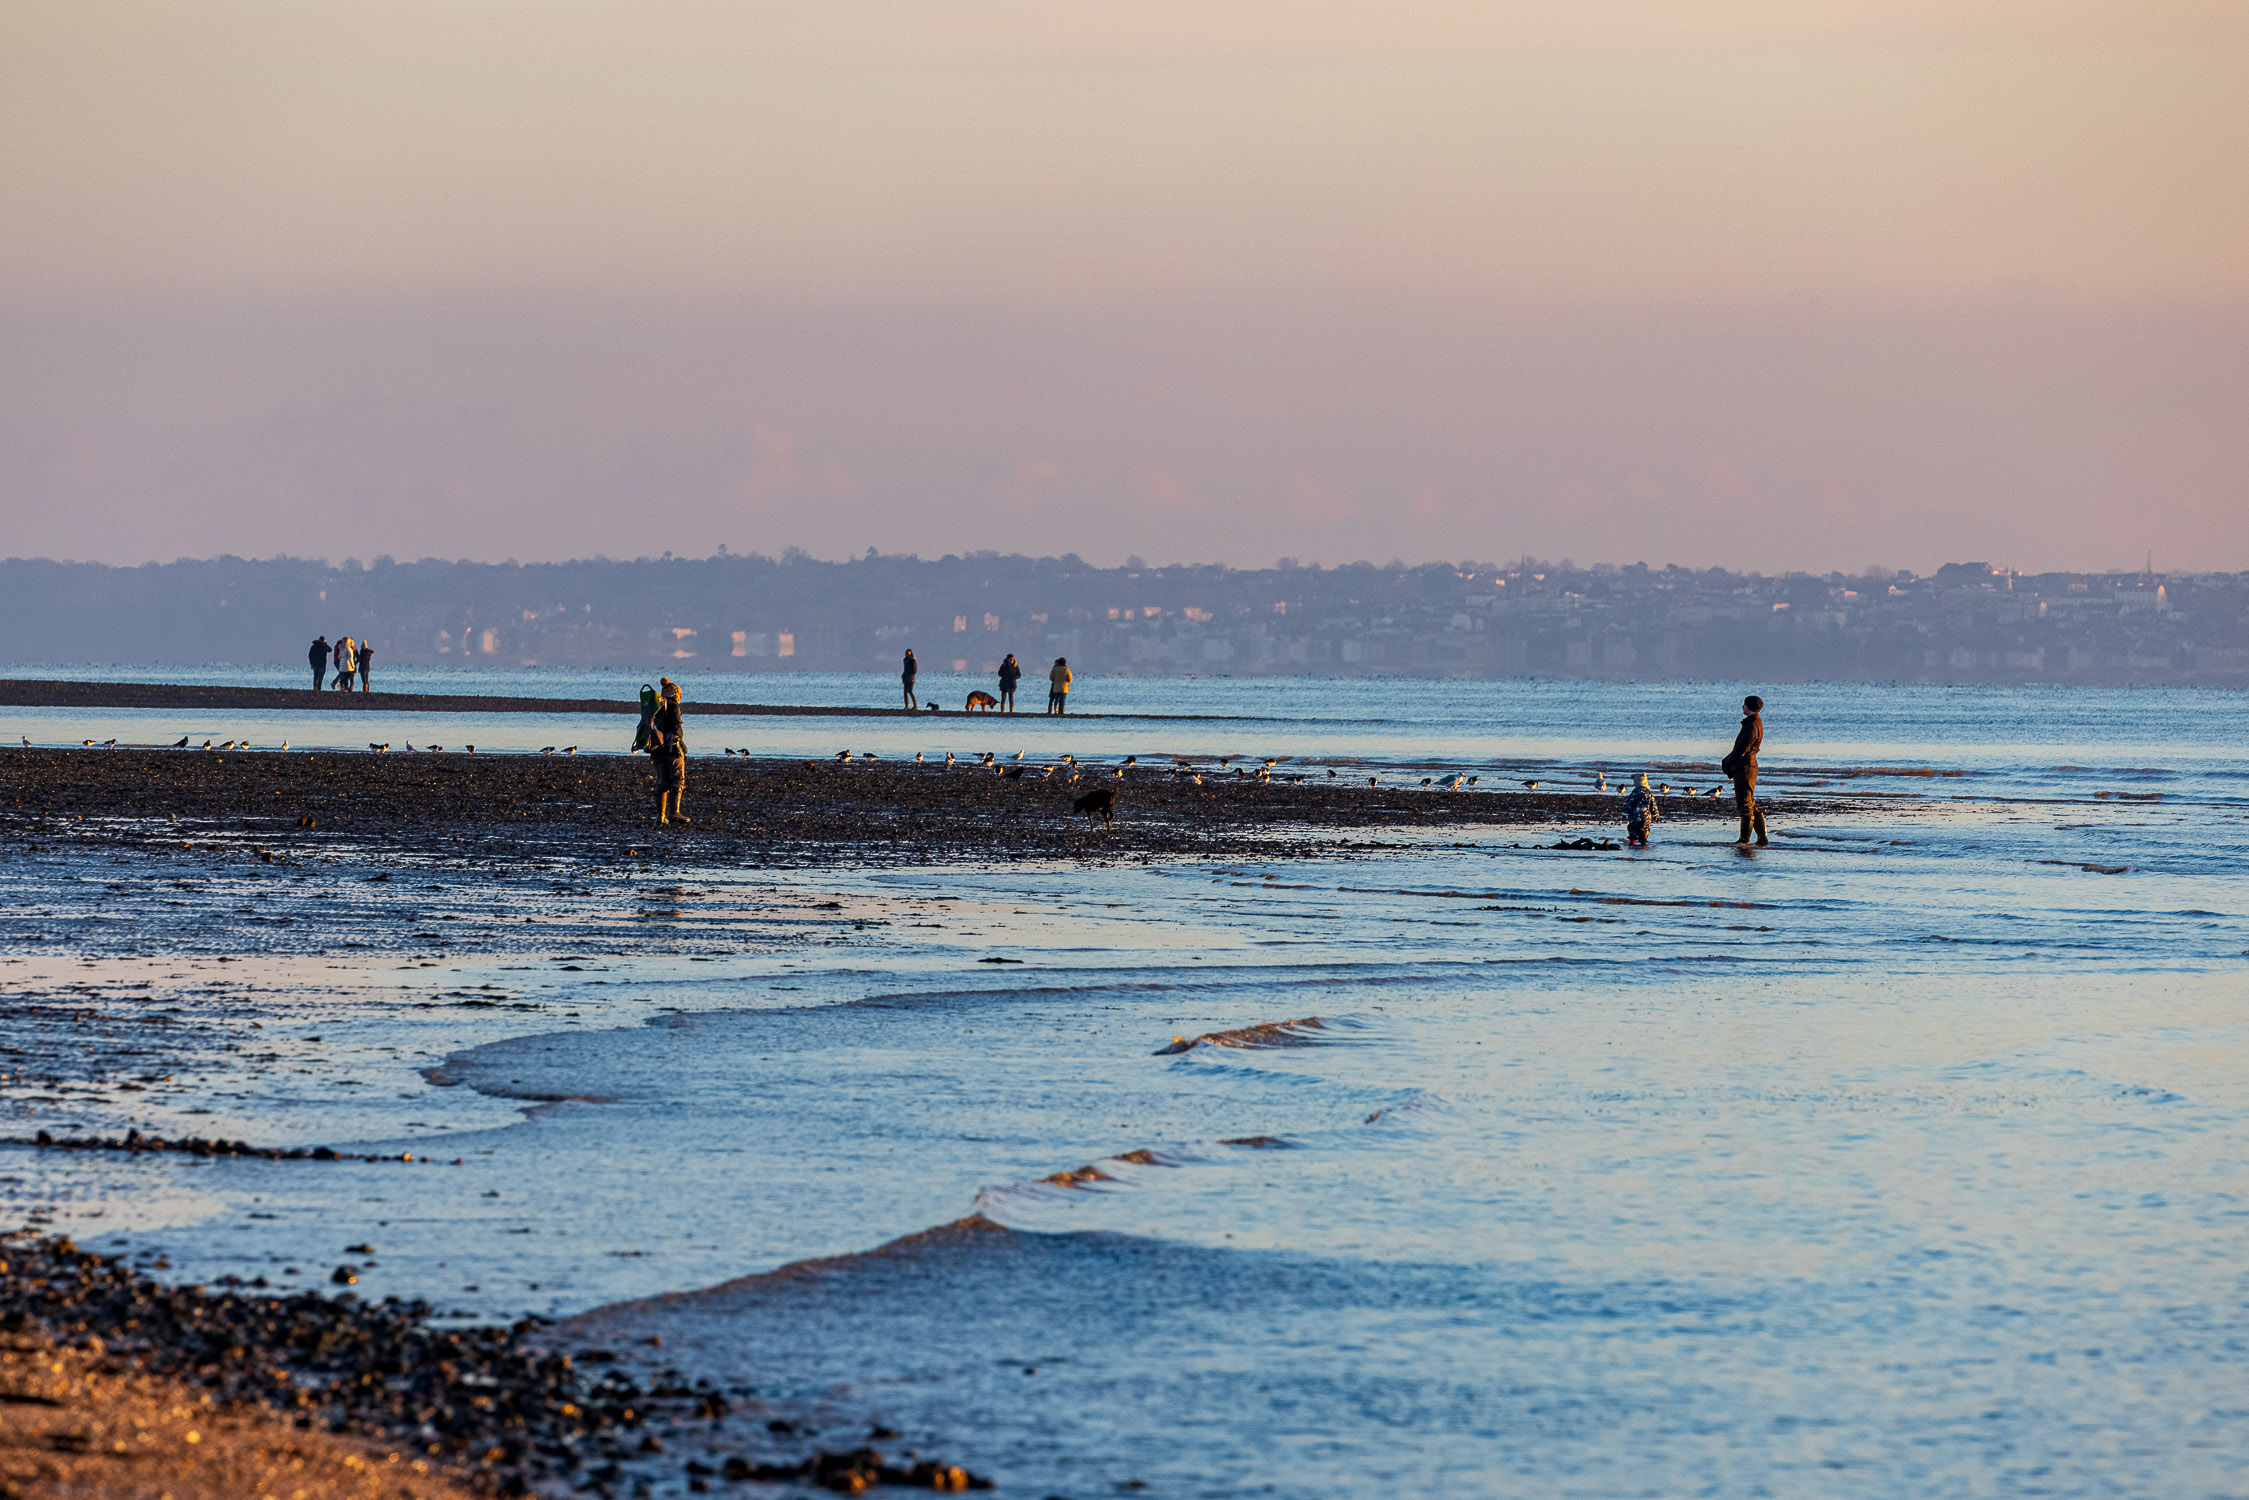 WInter afternoon on Meon Beach